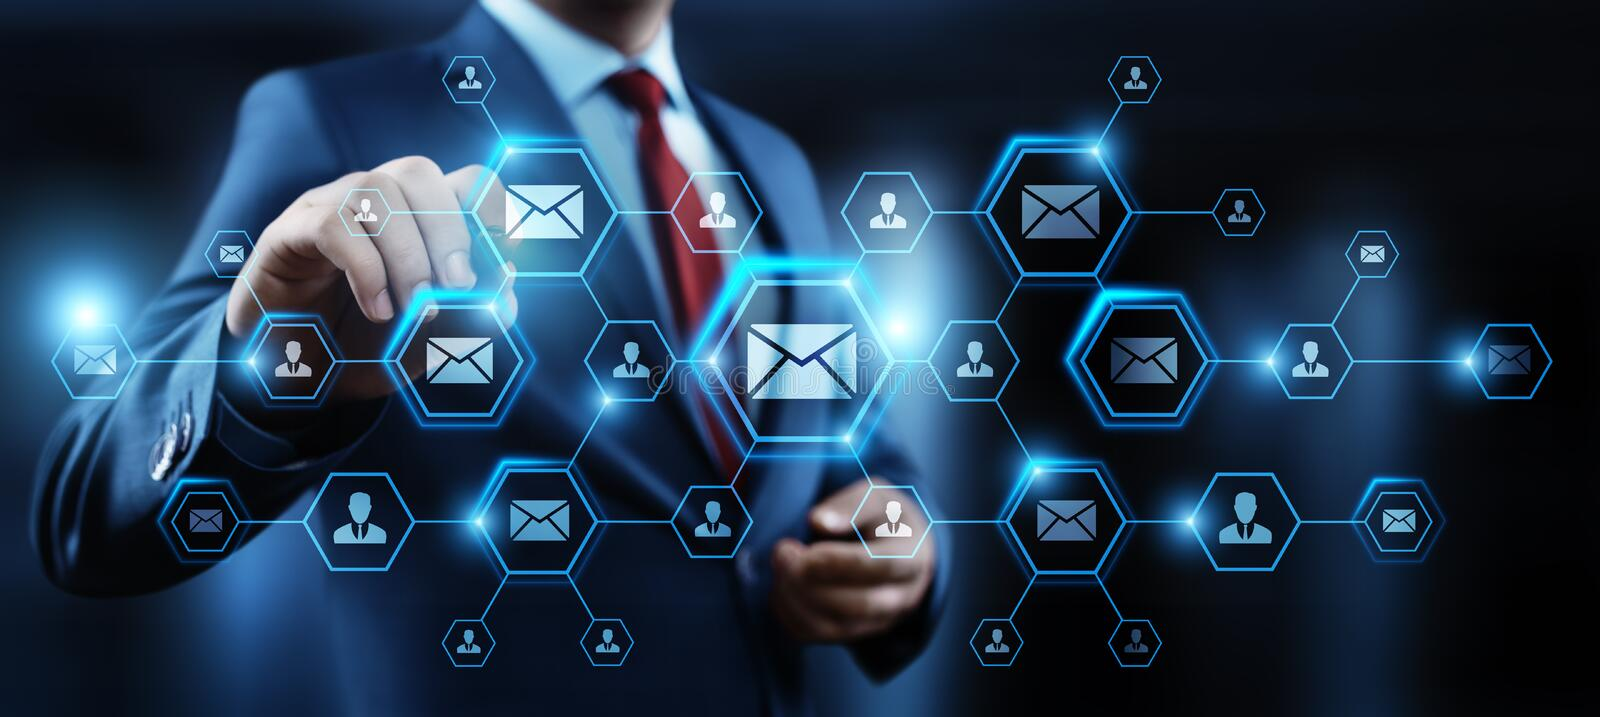 Message Email Mail Communication Online Chat Business Internet Technology Network Concept royalty free stock photo